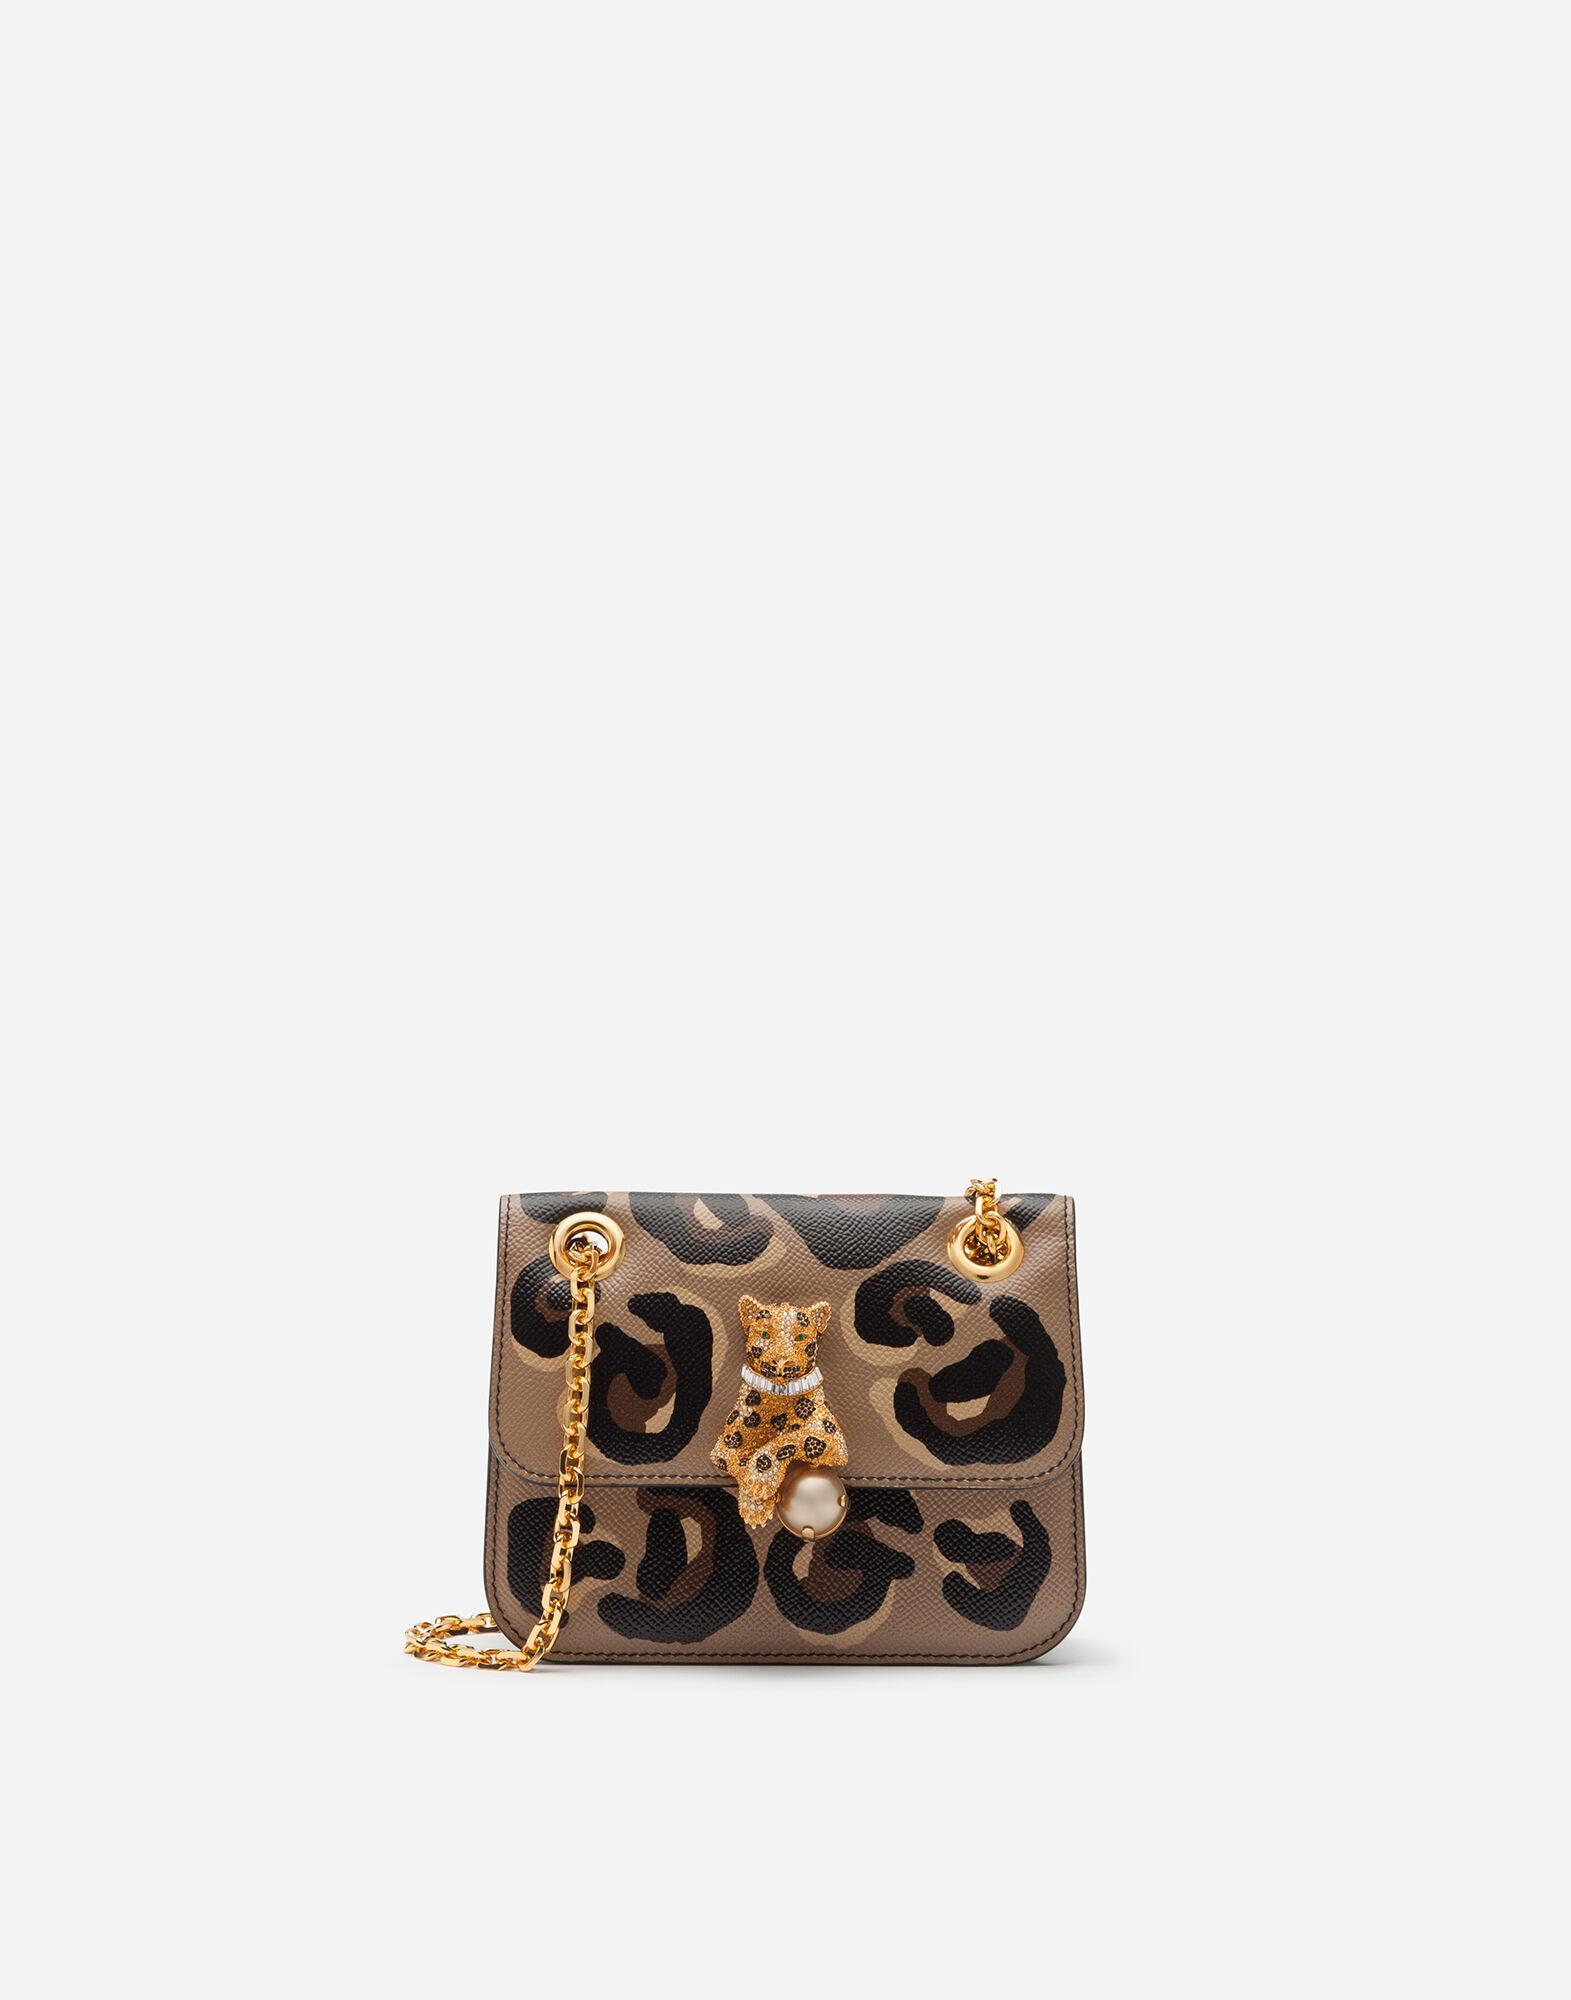 Small jungle bag in calfskin with DG leo print and bejeweled closure